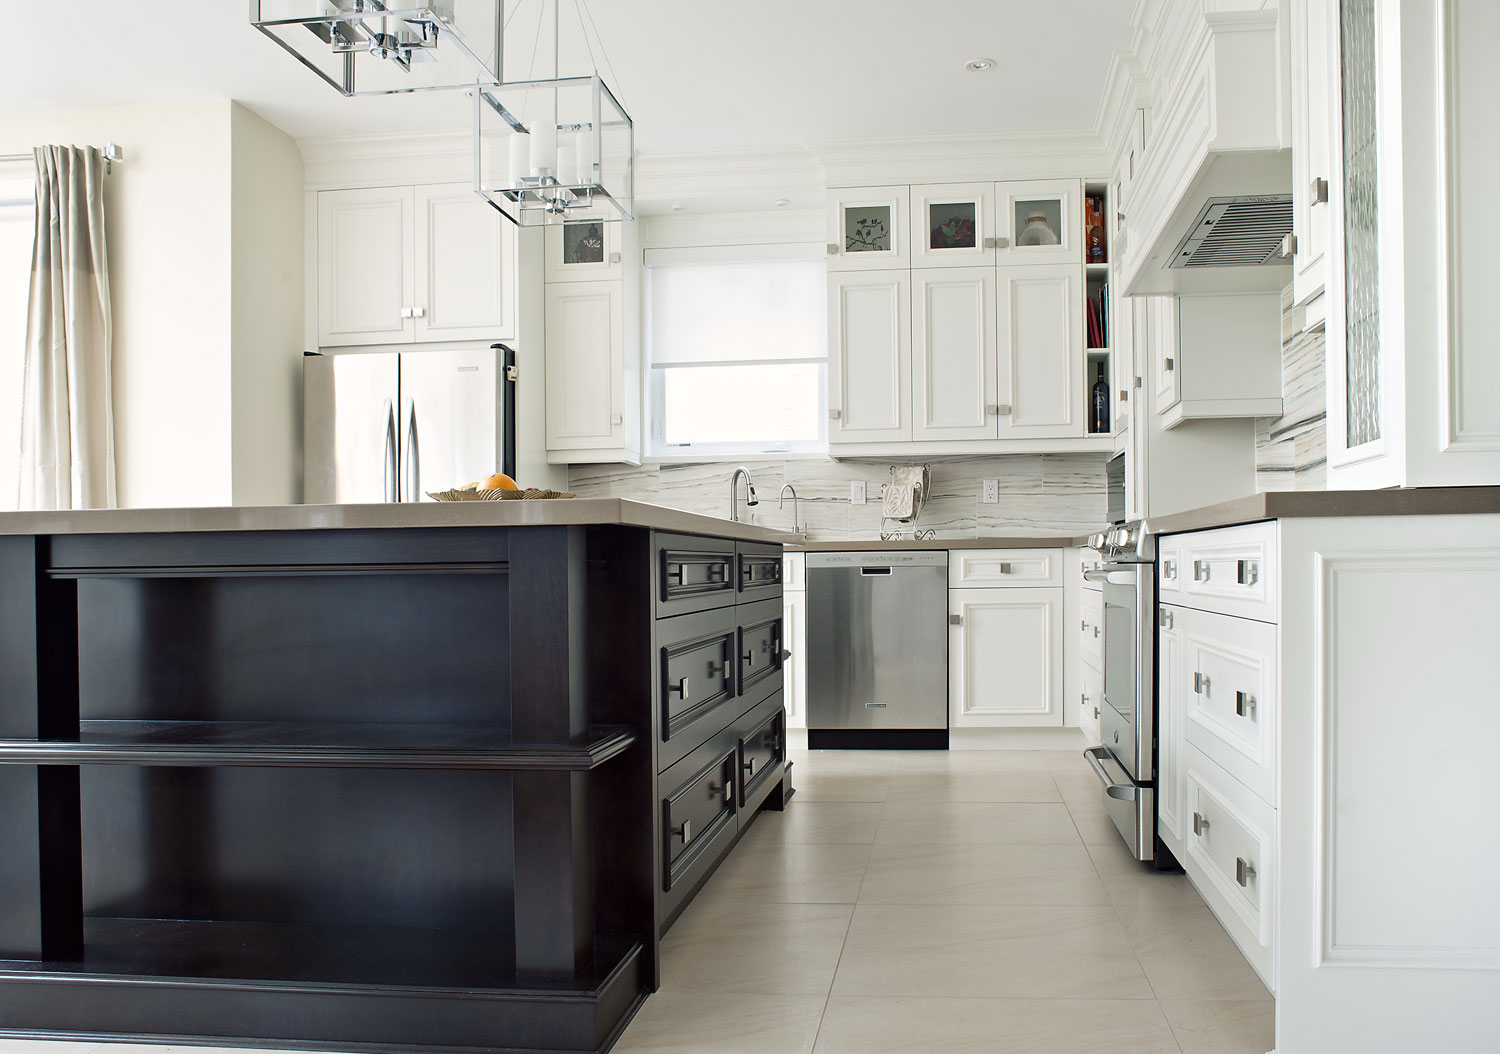 delaware vaughan custom kitchen and bathroom cabinetry kitchen cabinets in delaware kitchen